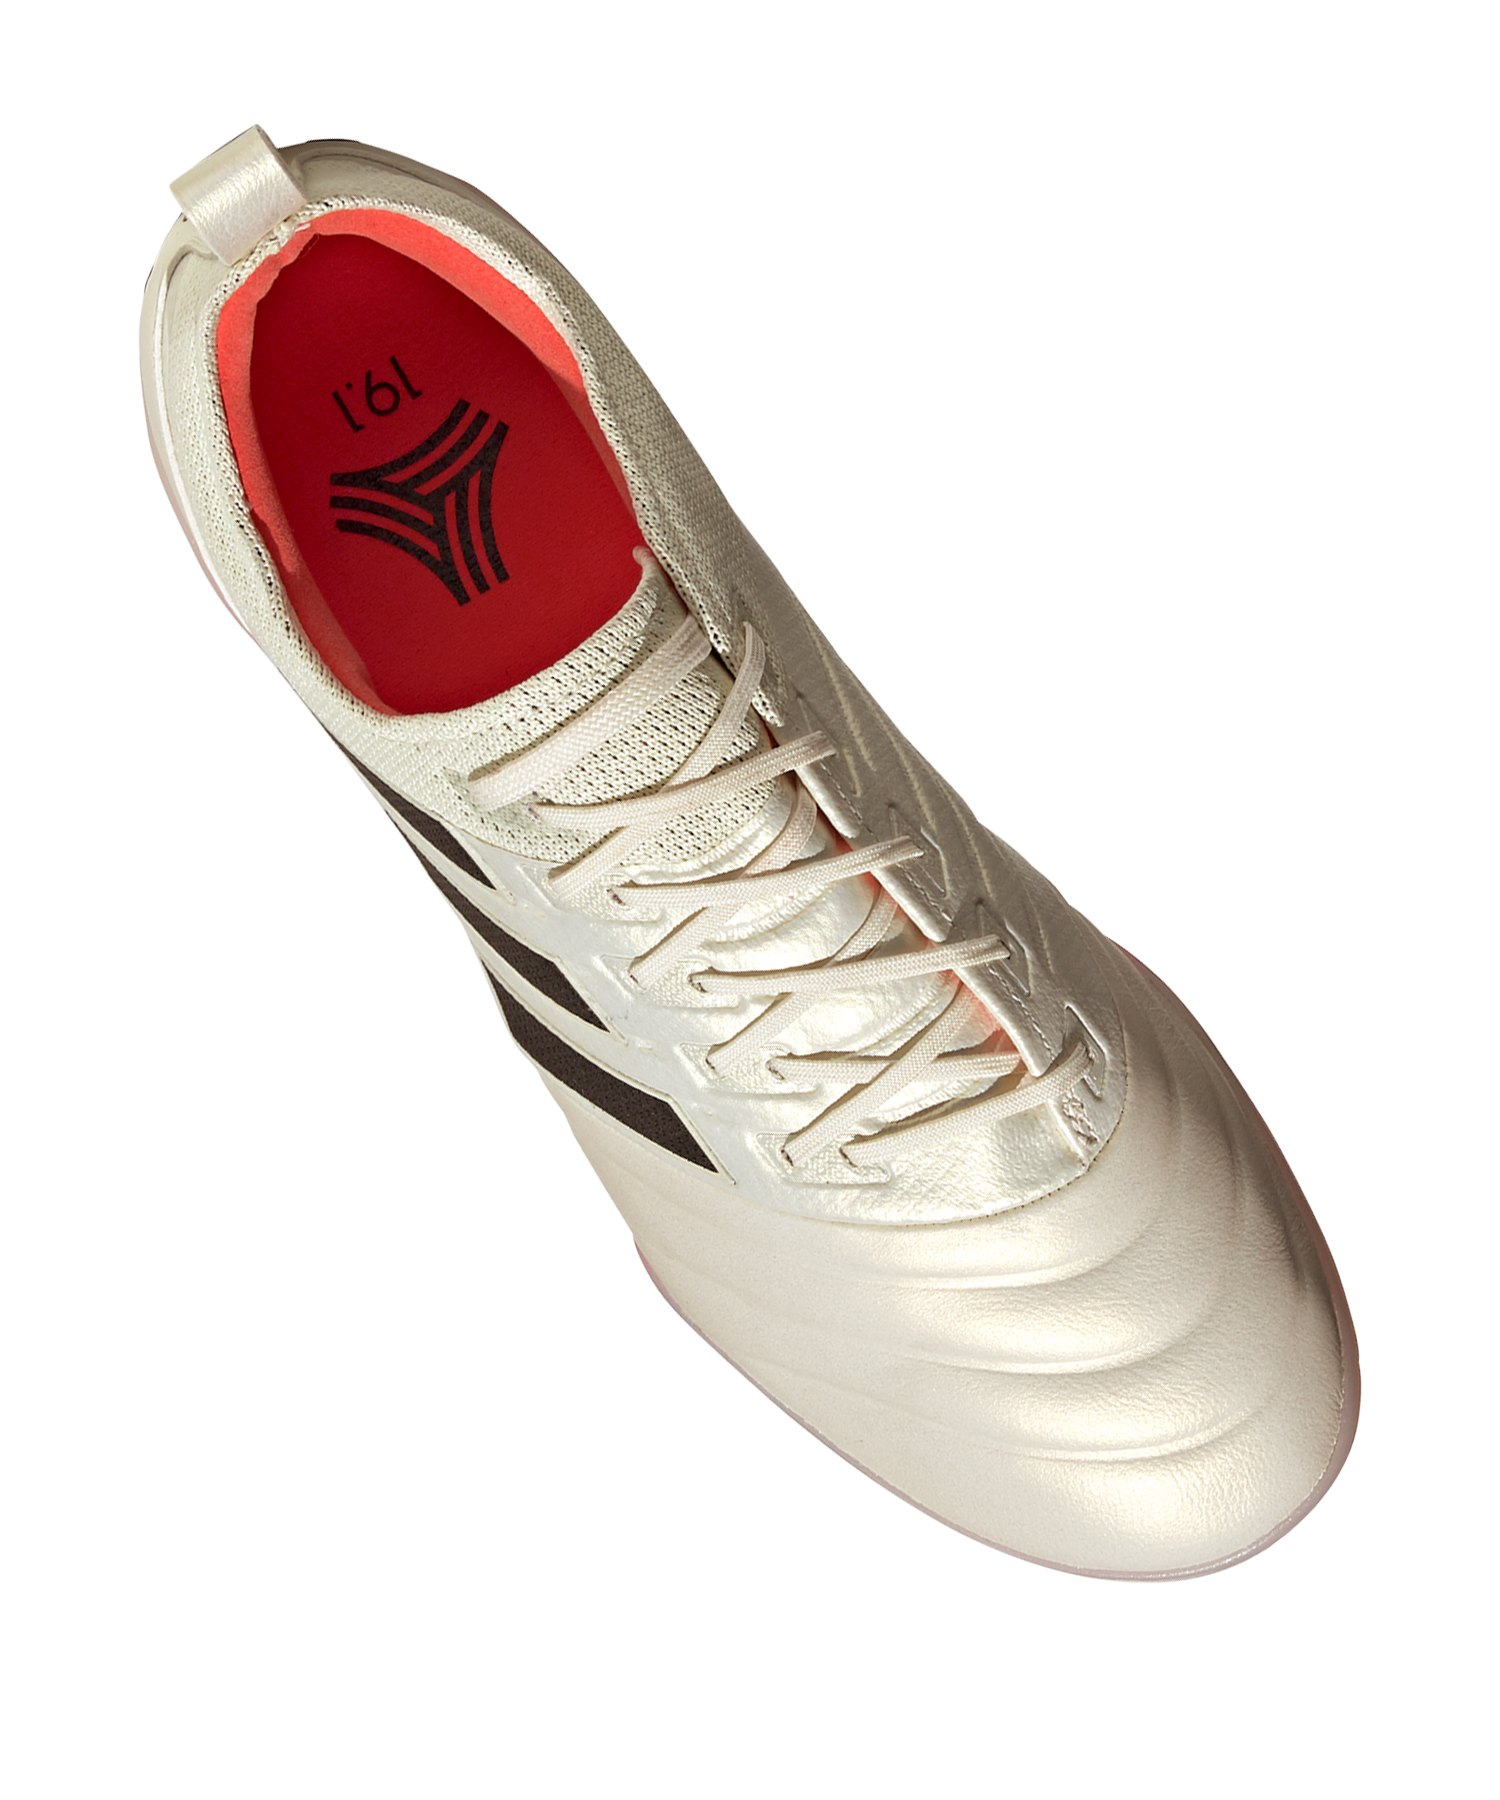 promo code e3380 3460f ... adidas COPA 19.1 TF Weiss Rot - weiss ...